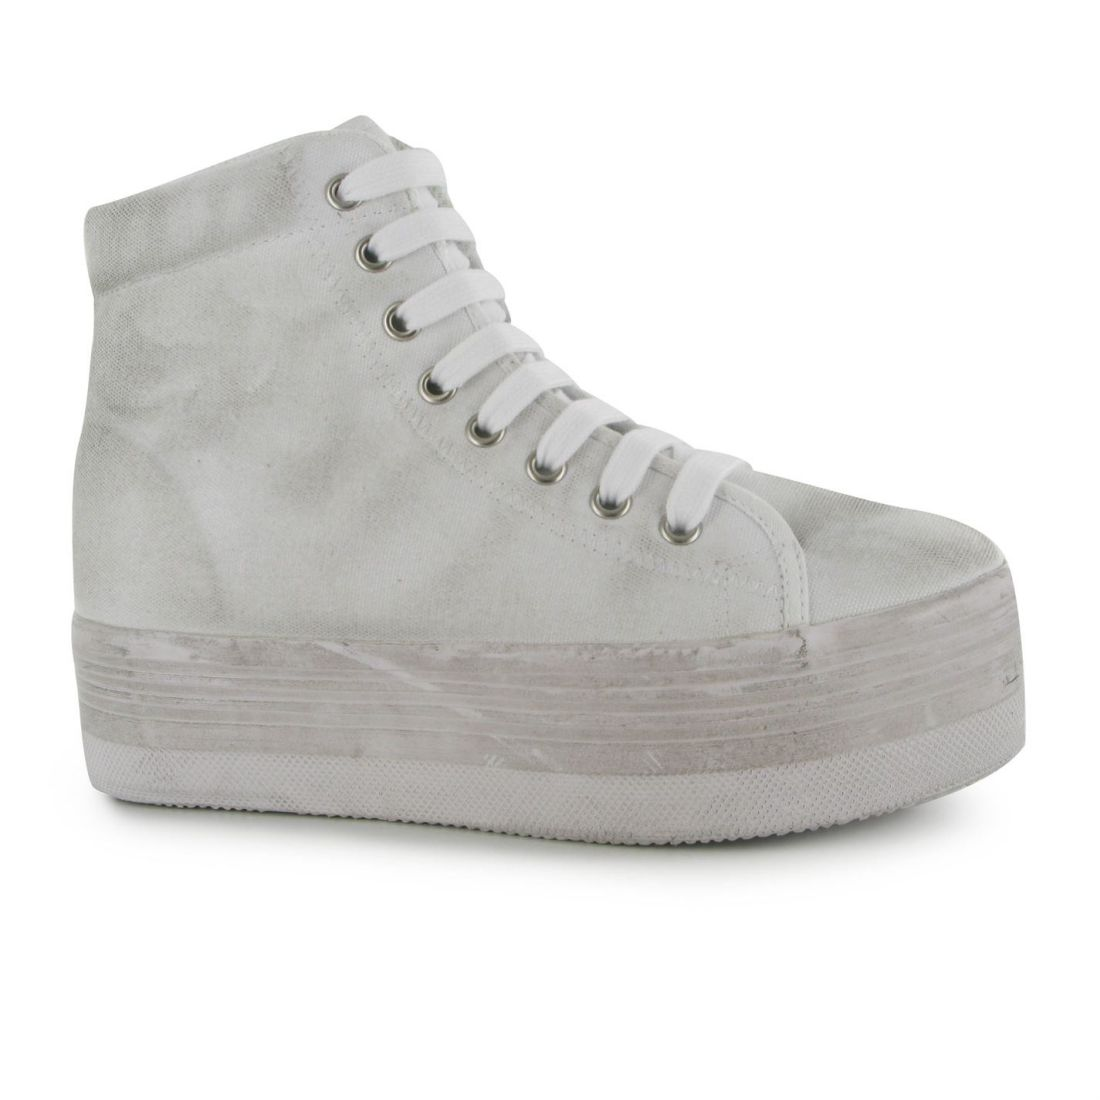 2357d63854ff37 Image is loading Jeffrey-Campbell-Ladies-Womens-Shoes-Play-Canvas-Washed-